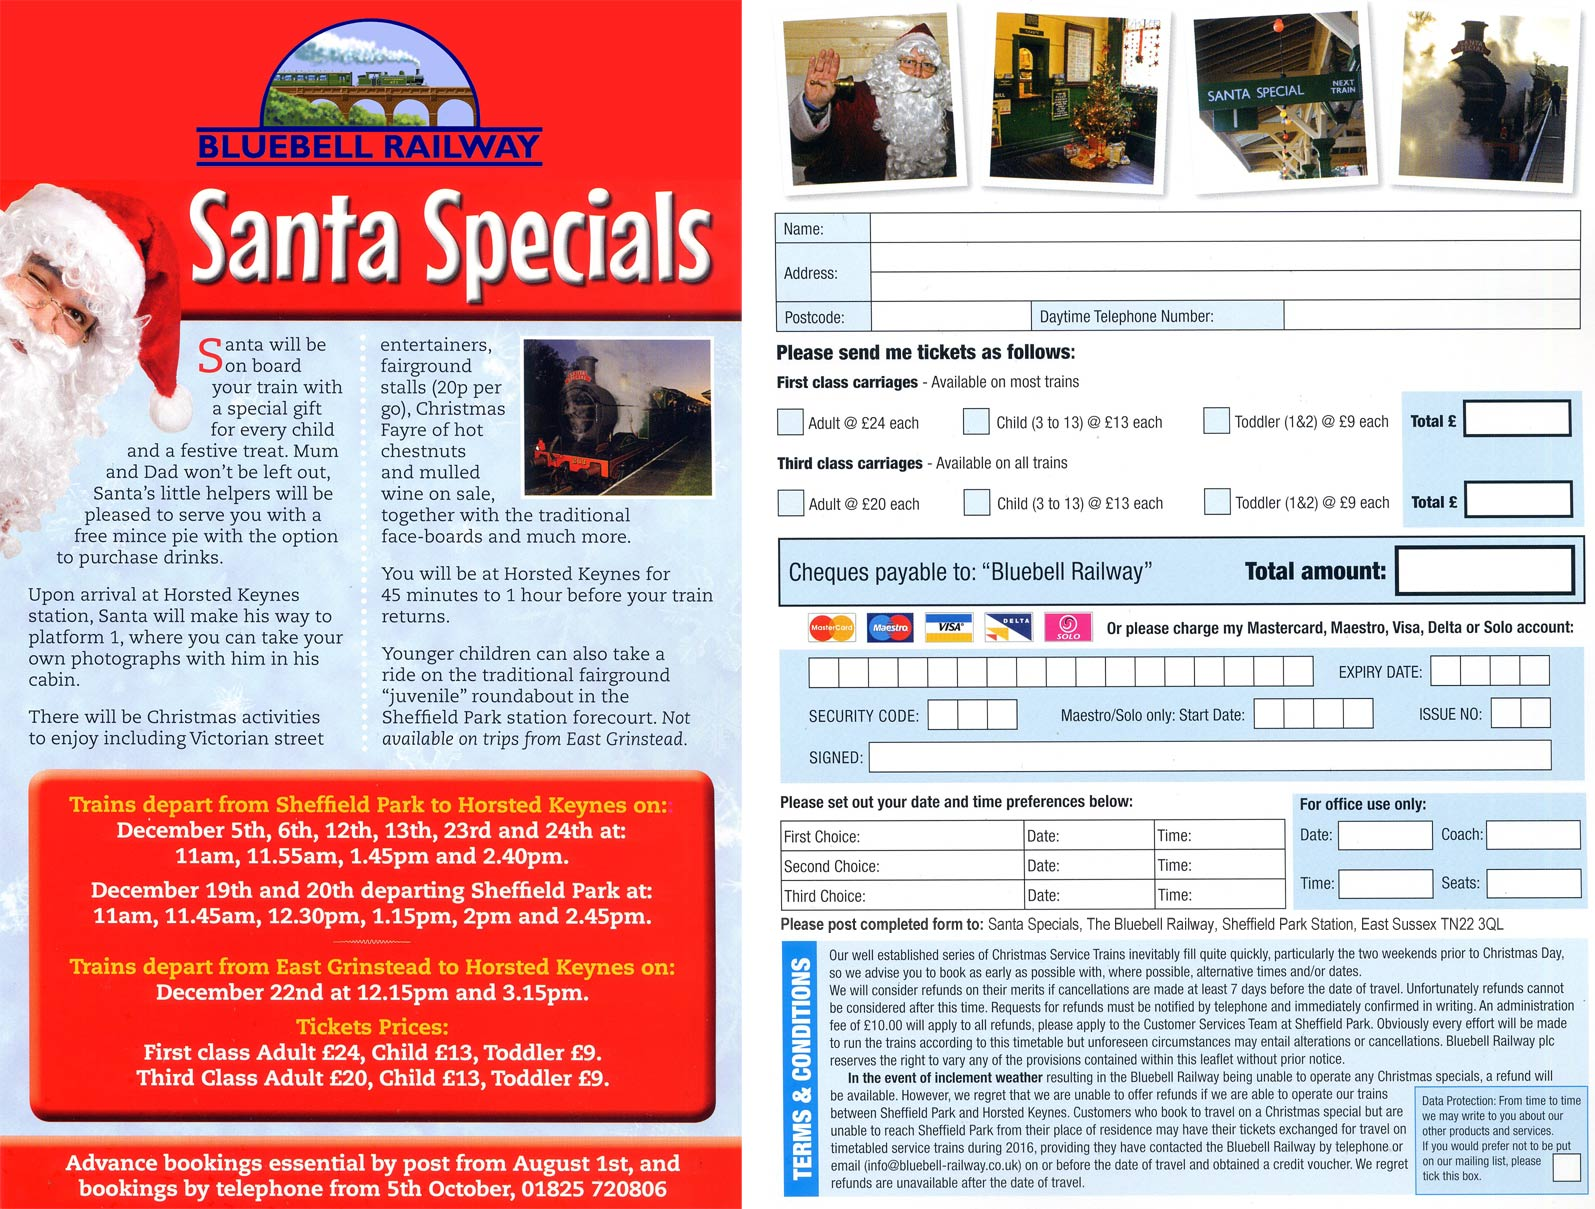 http://www.bluebell-railway.co.uk/bluebell/events/e-pic/santa/santa_15_form.jpg